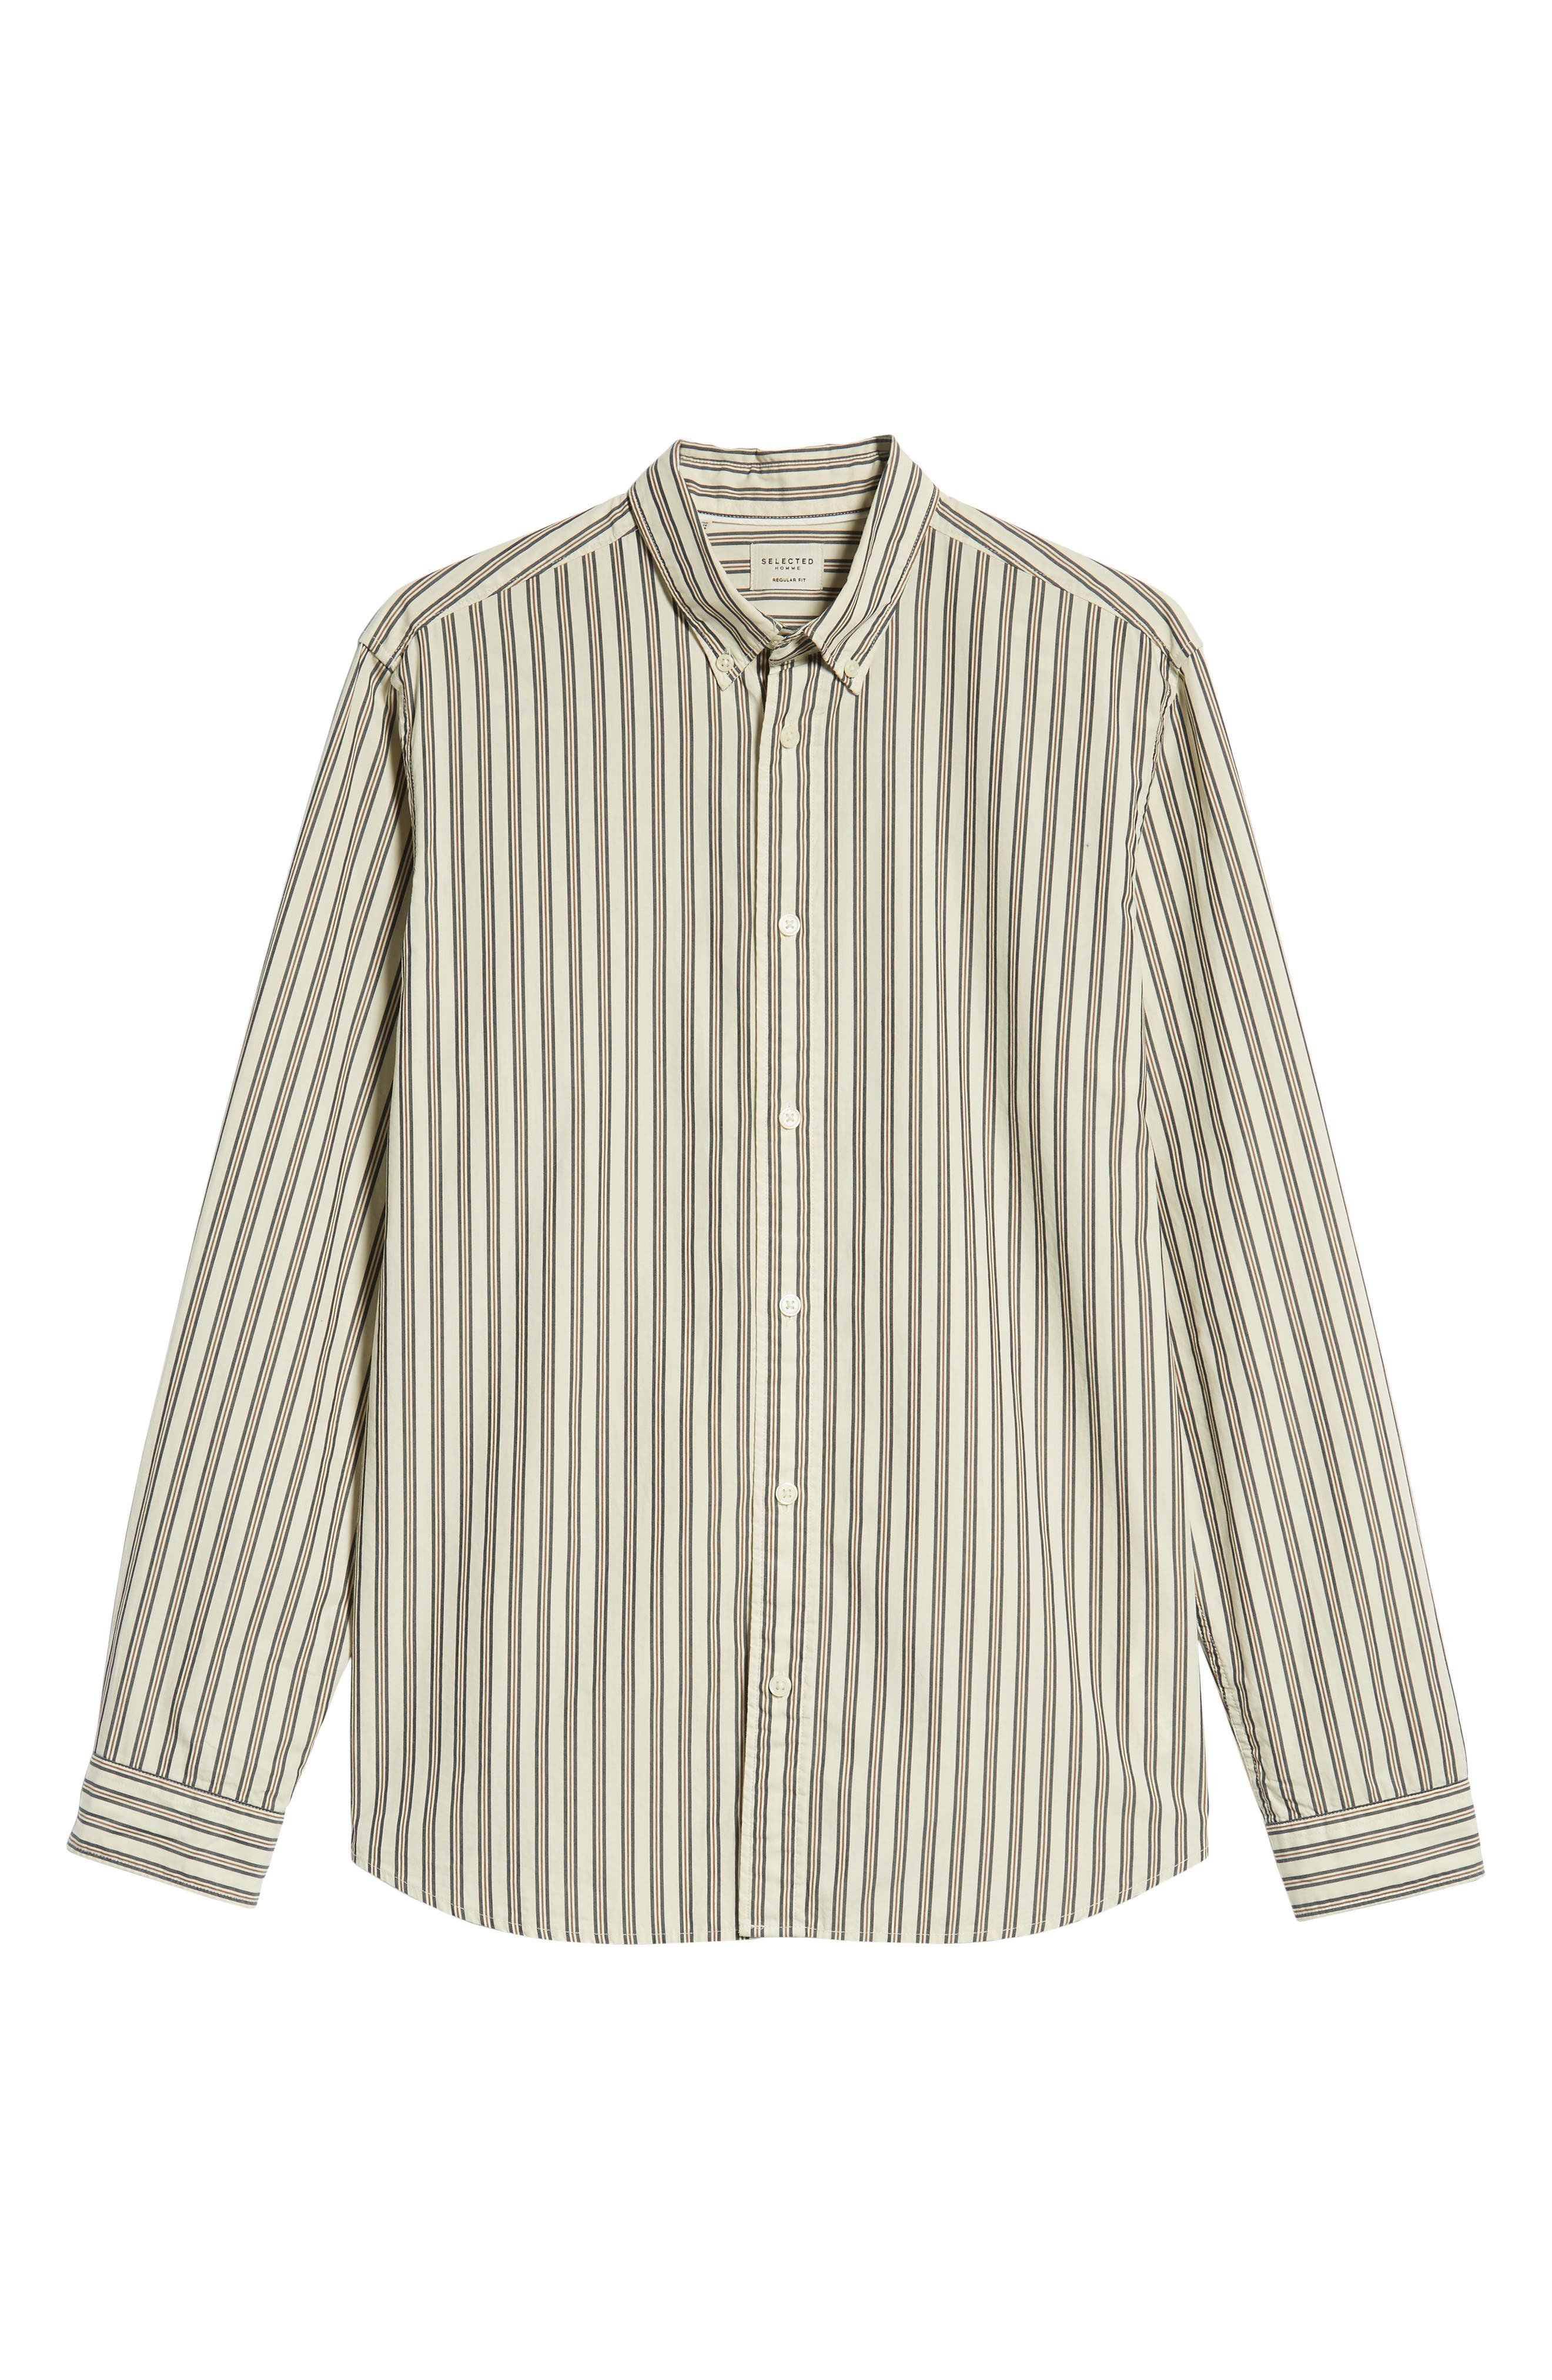 Carl Regular Fit Stripe Sport Shirt,                             Alternate thumbnail 5, color,                             OYSTER GREY STRIPES